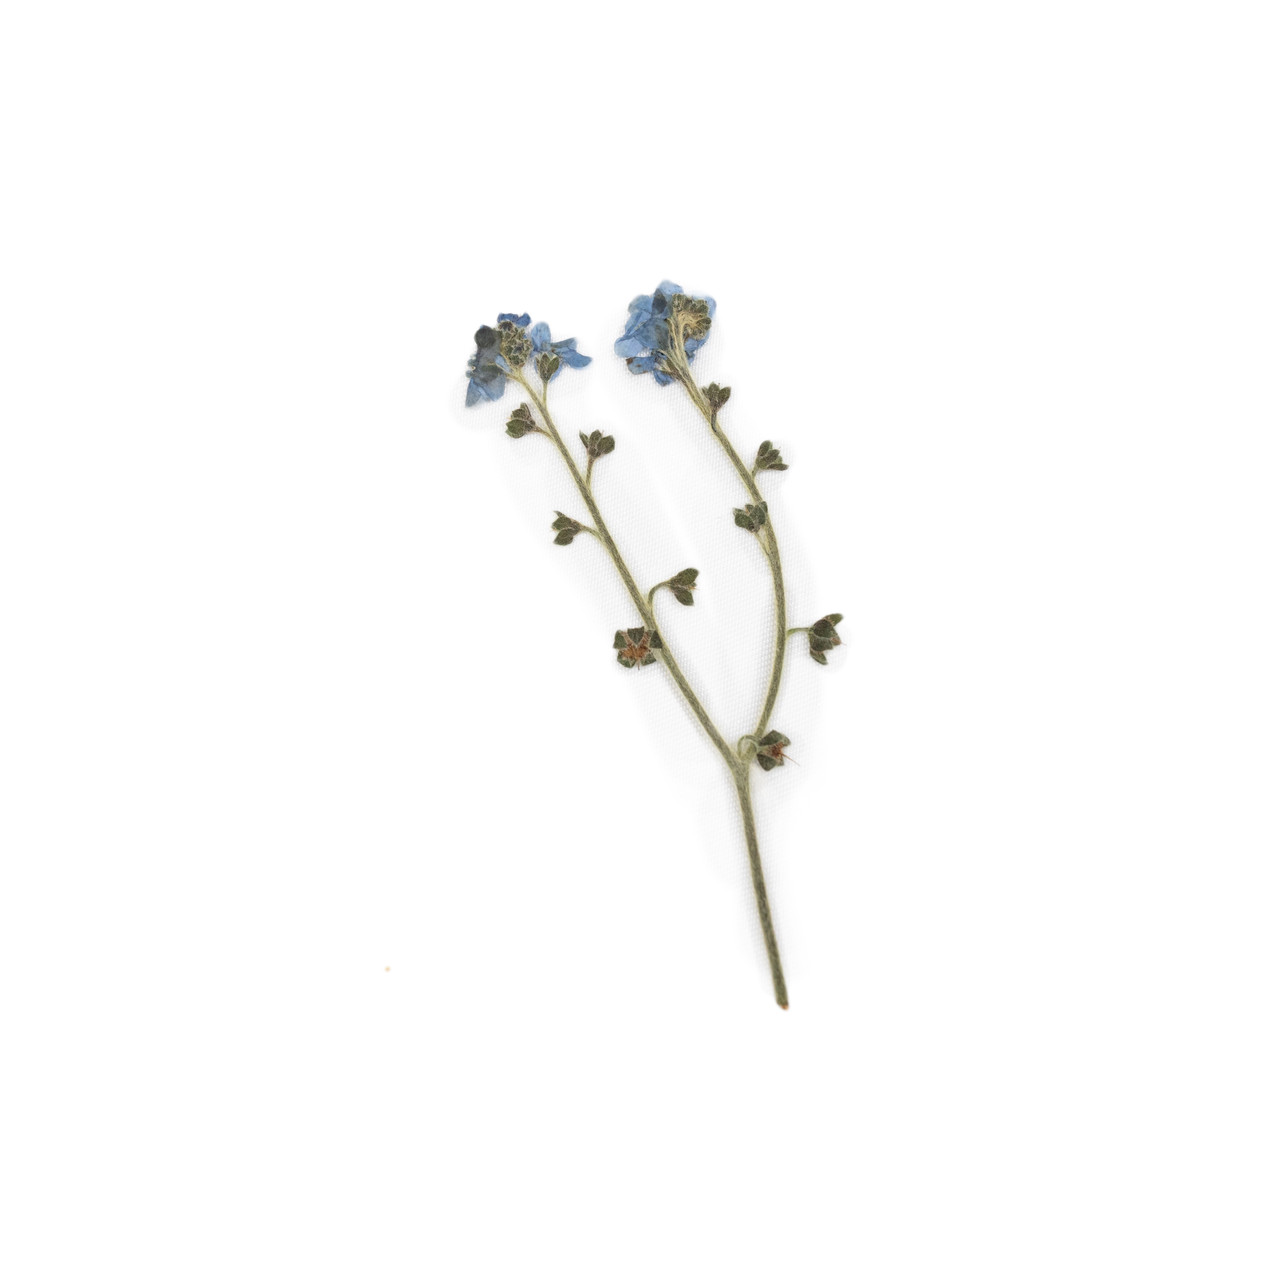 Pressed Botanical - Forget-Me-Not